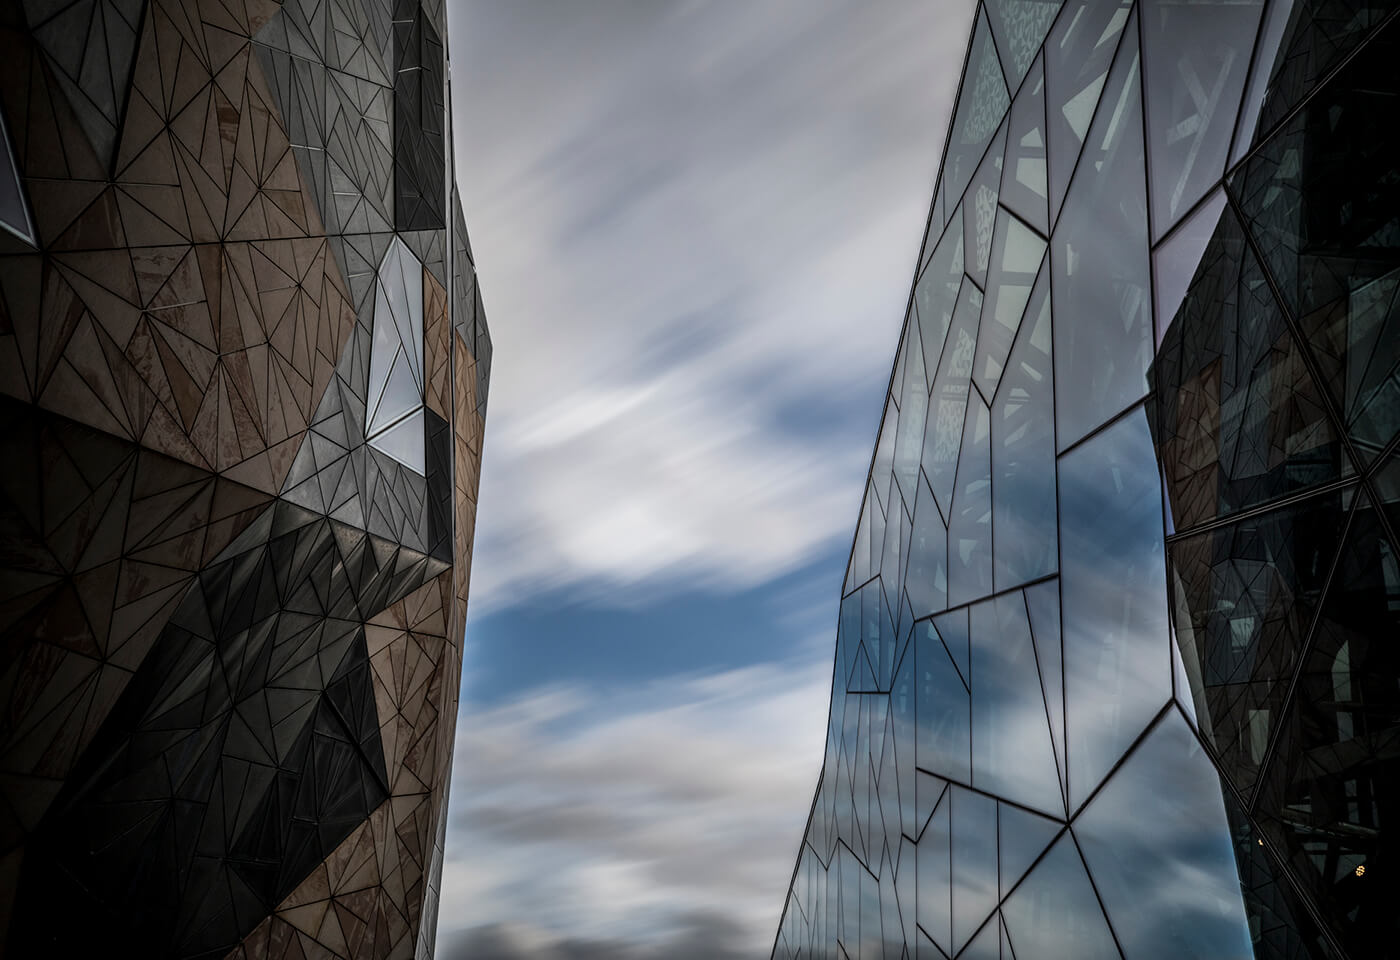 Introduction to lightroom banner image of reflections in two glass buildings